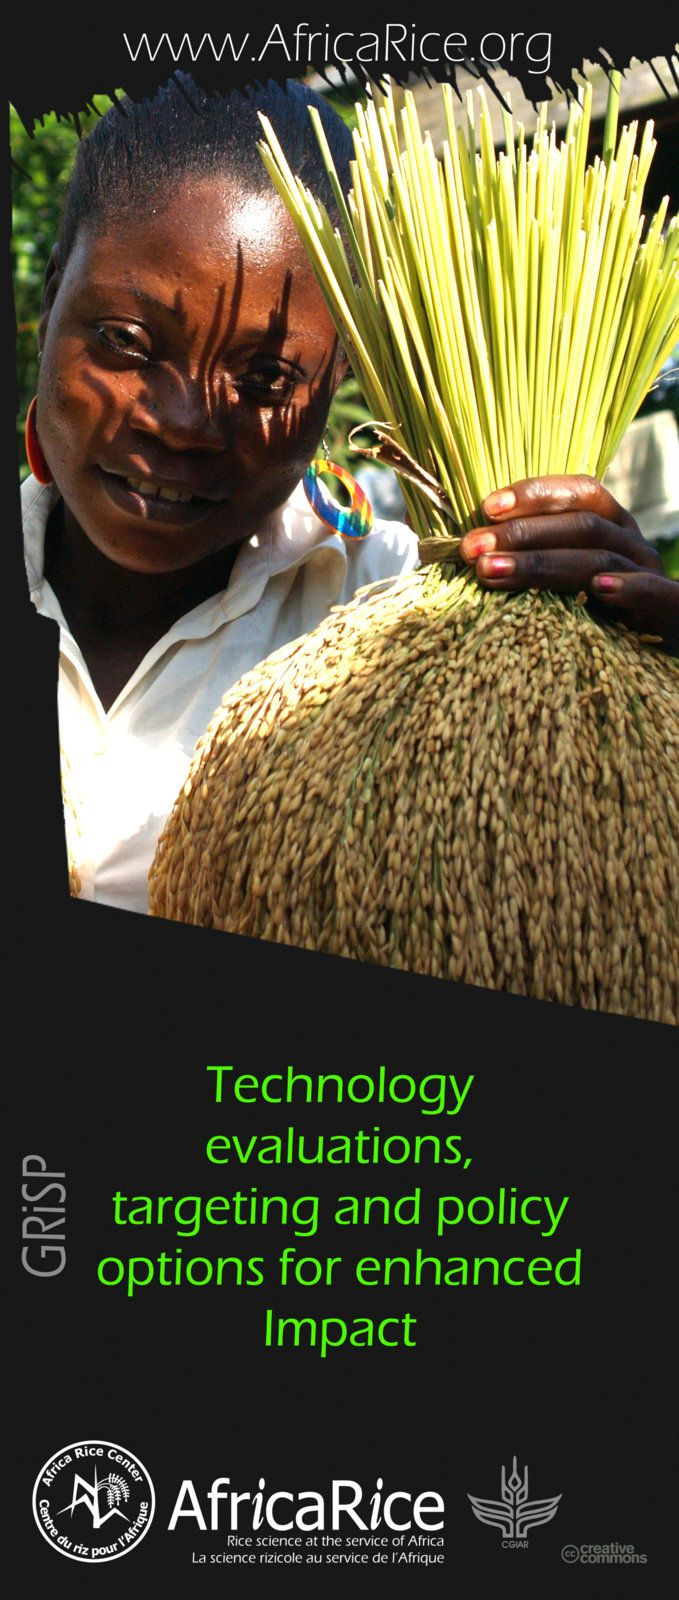 Global Rice Science Partnership (GRiSP) Themes Theme 5: Technology evaluations, targeting and policy options for enhanced Impact Photo, Poster Design : R.Raman, AfricaRice